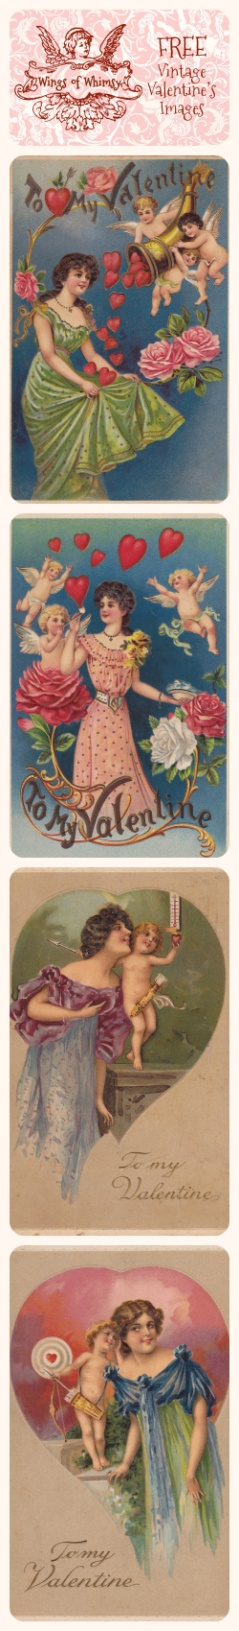 Wings of Whimsy: Valentine Ladies & Cherubs Images Pinfographic